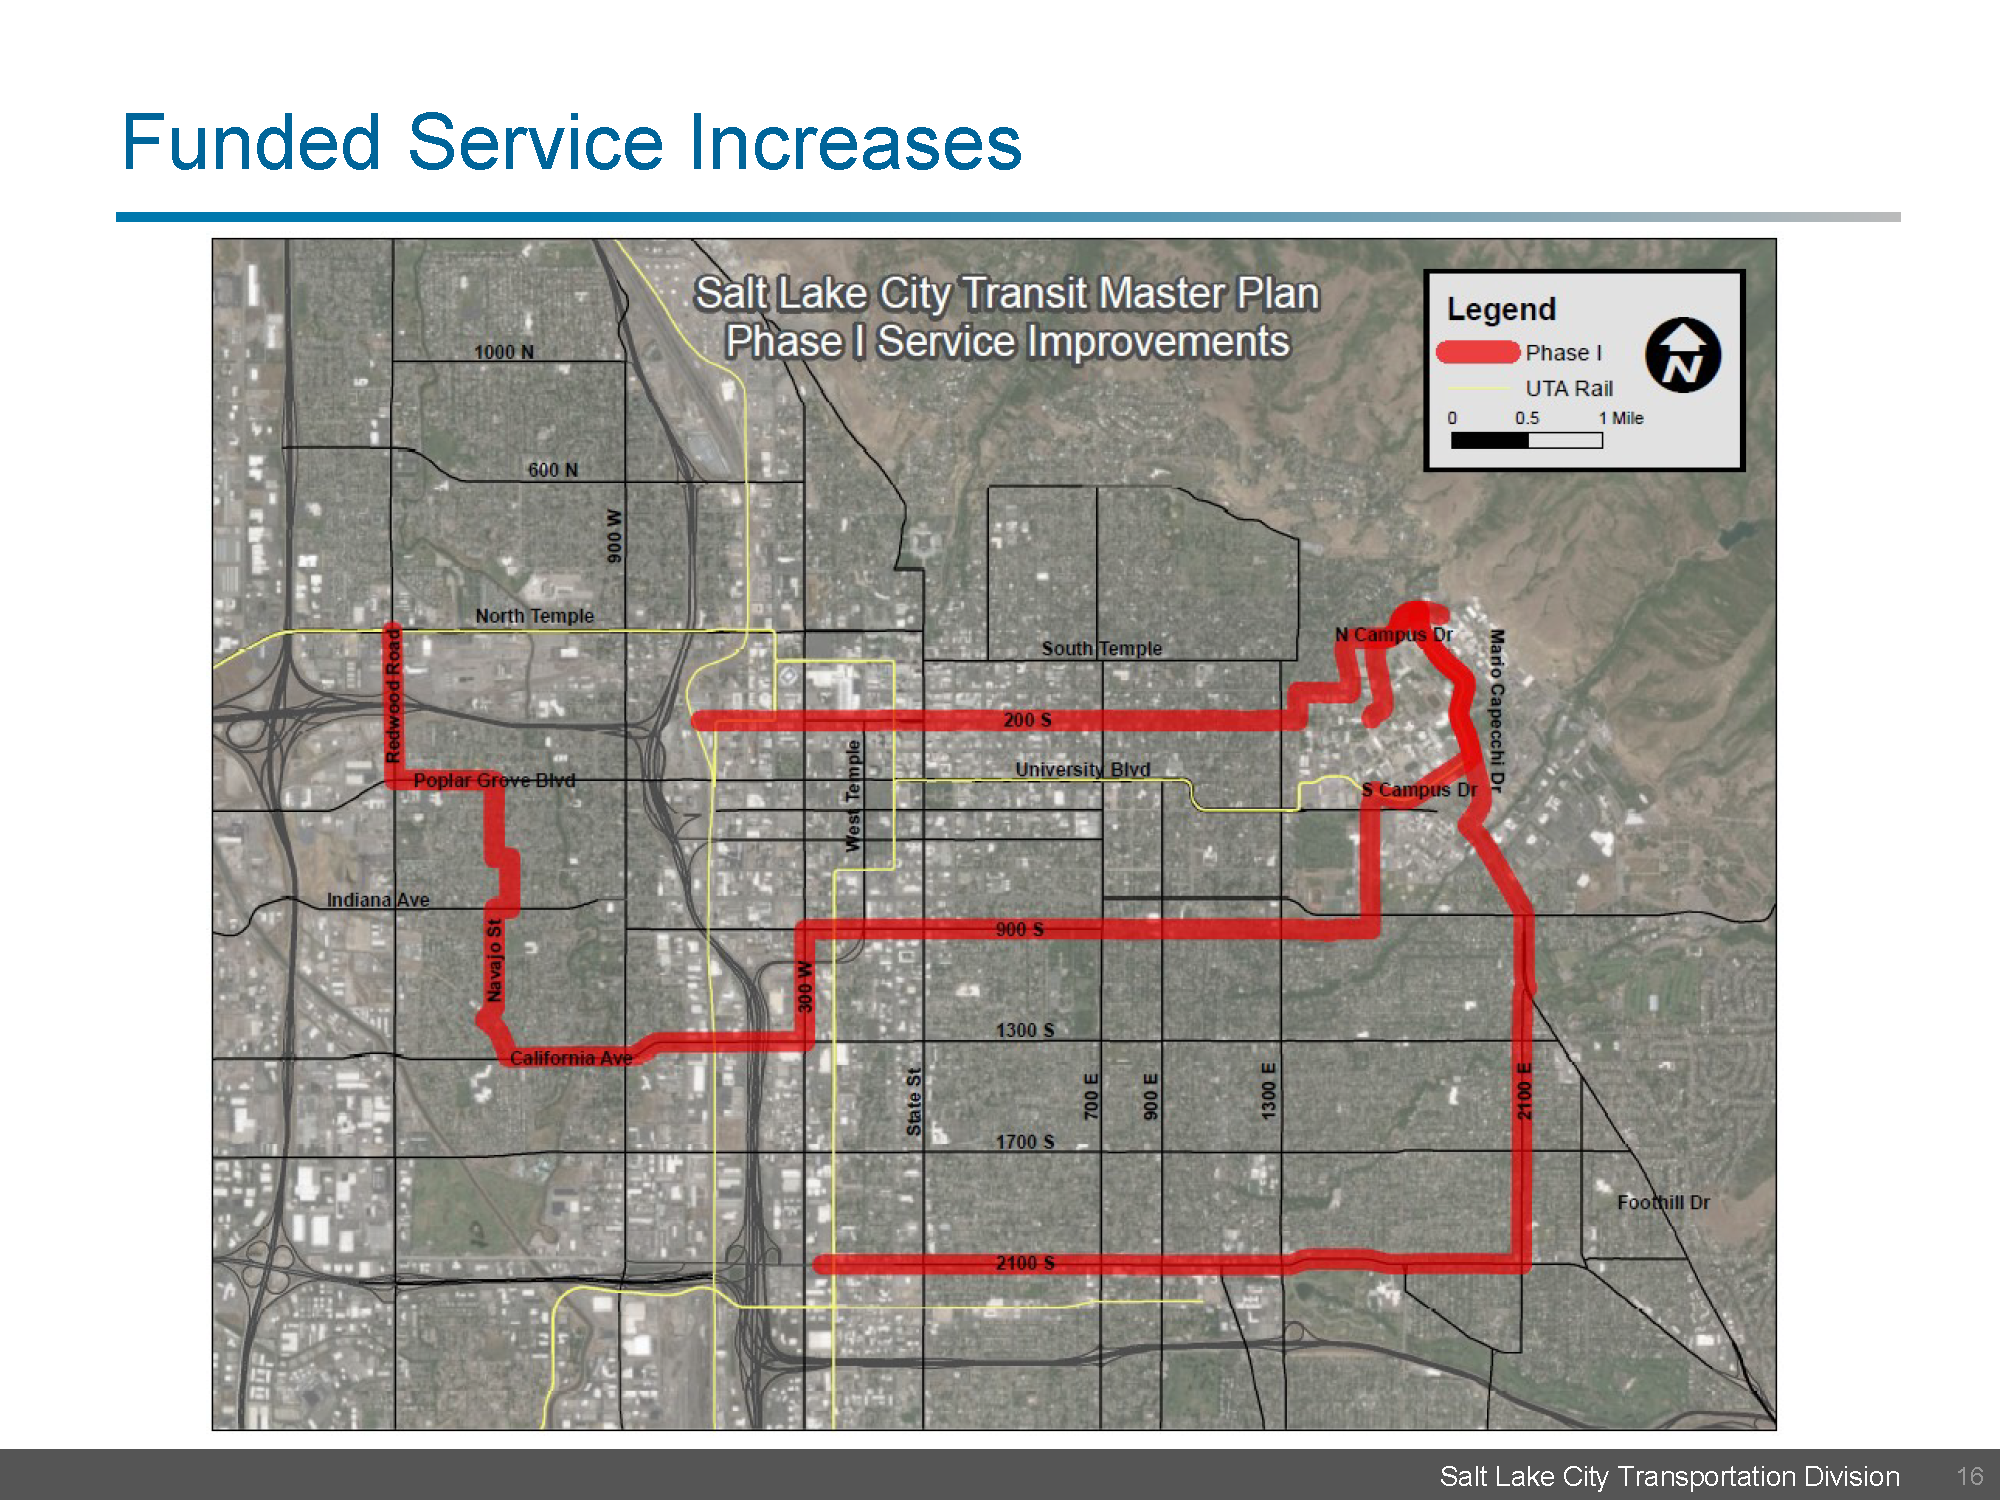 Map showing routes funded for service increases along 200 South, 900 South, and 2100 South